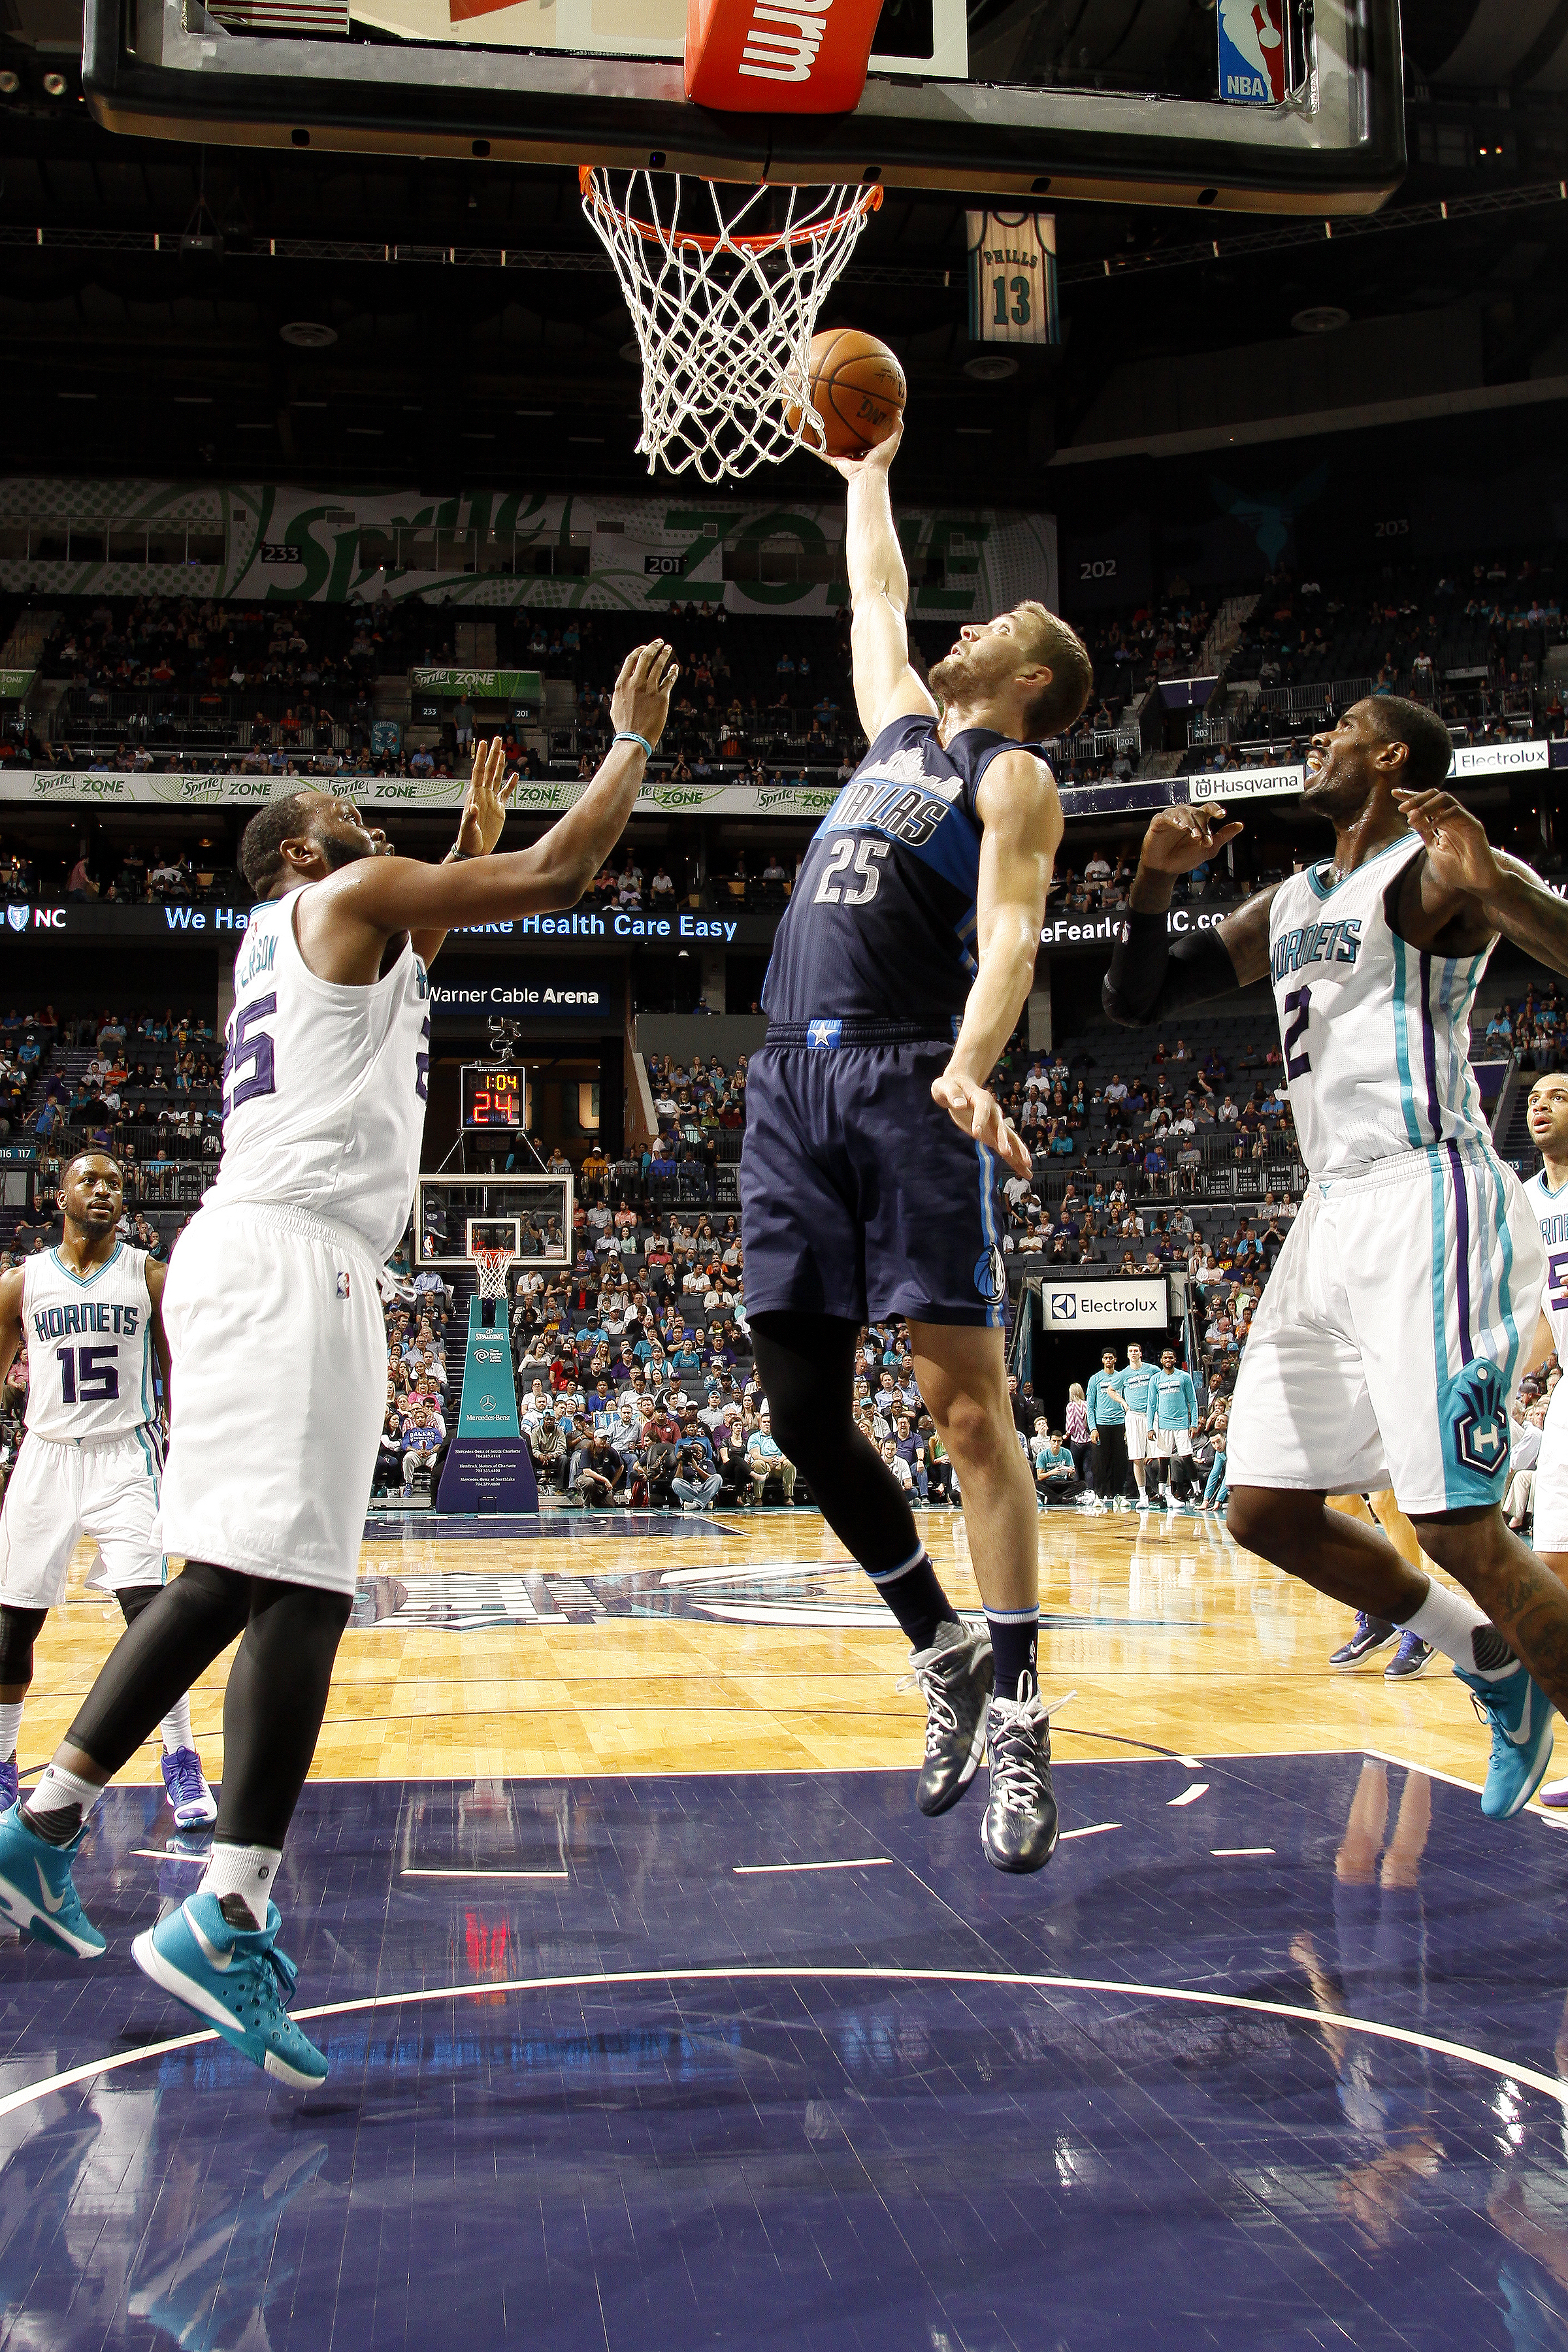 CHARLOTTE, NC - MARCH 14: Chandler Parsons #25 of the Dallas Mavericks goes for the lay up during the game against the Charlotte Hornets on March 14, 2016 at Time Warner Cable Arena in Charlotte, North Carolina. (Photo by Kent Smith/NBAE via Getty Images)